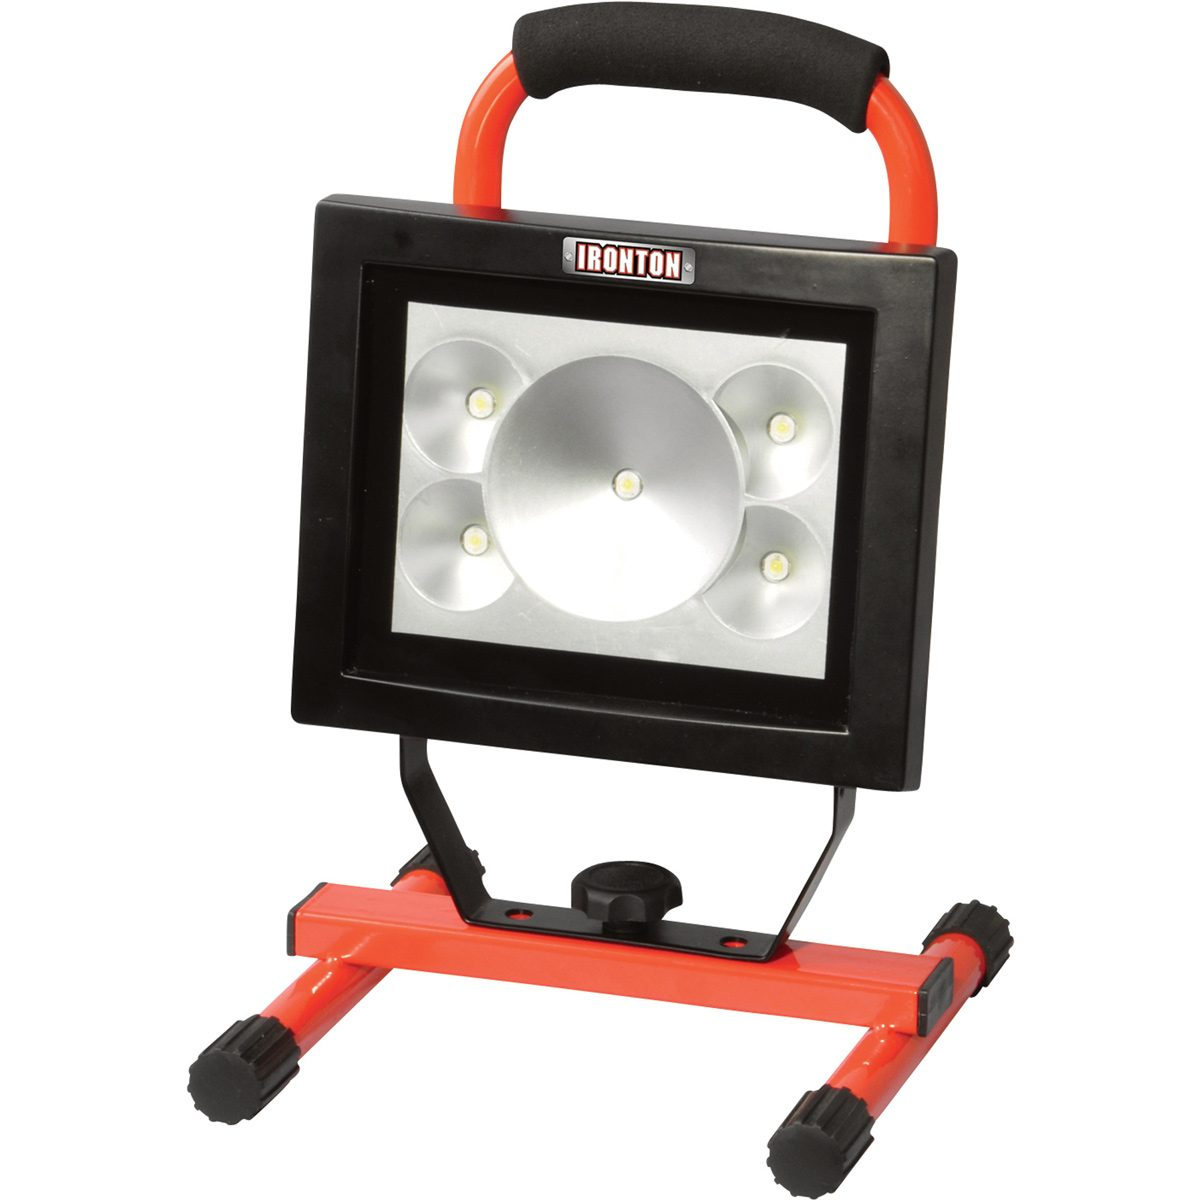 Versatile LED Work Light